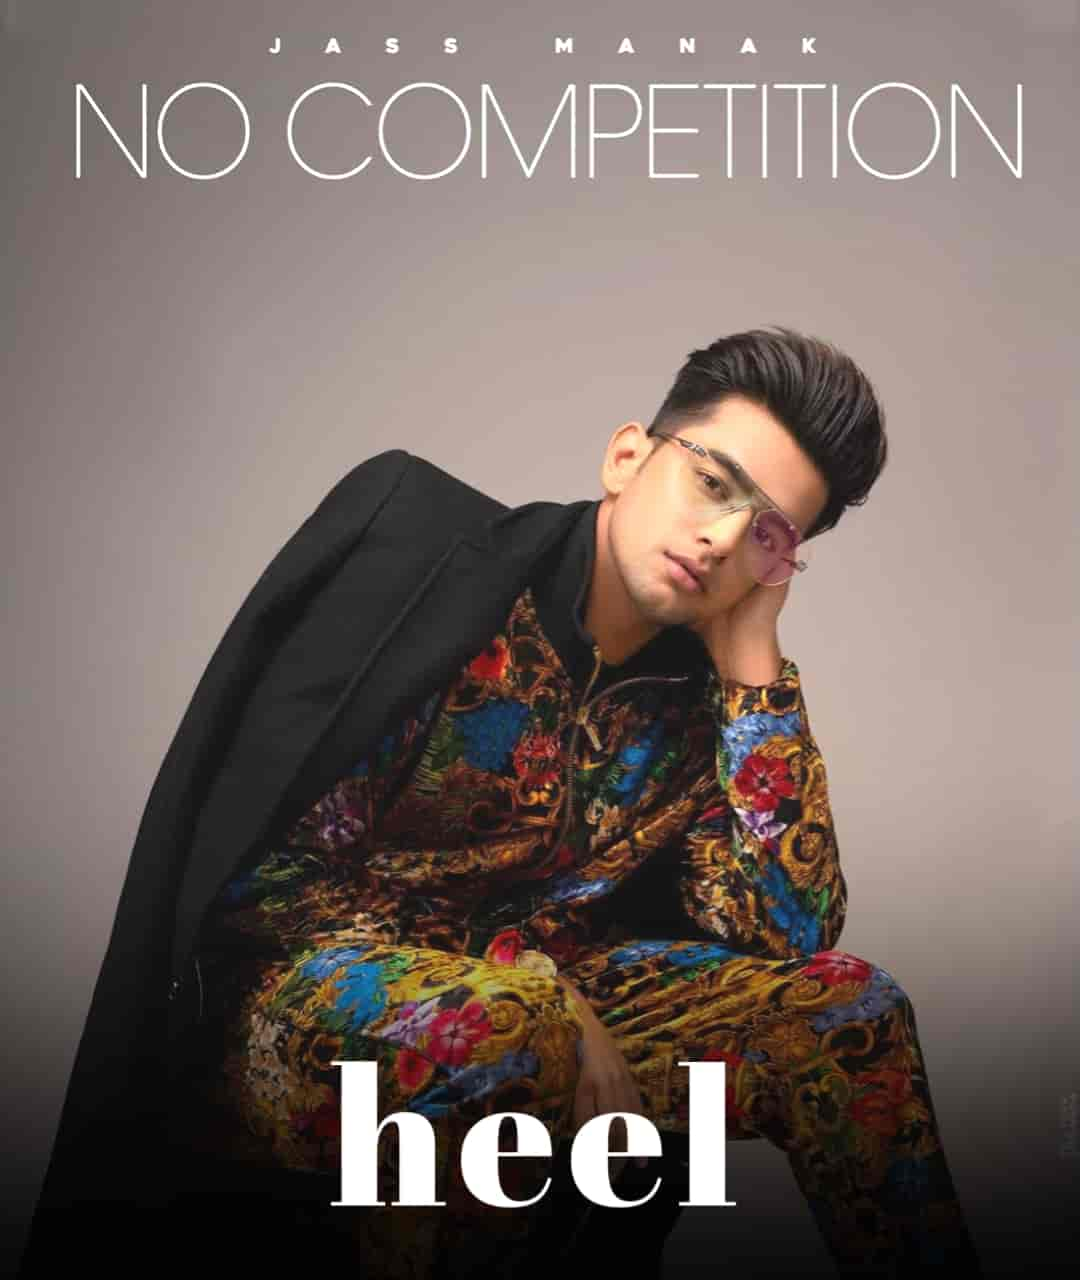 Heel Punjabi Song Image By Jass Manak From Album No Competition